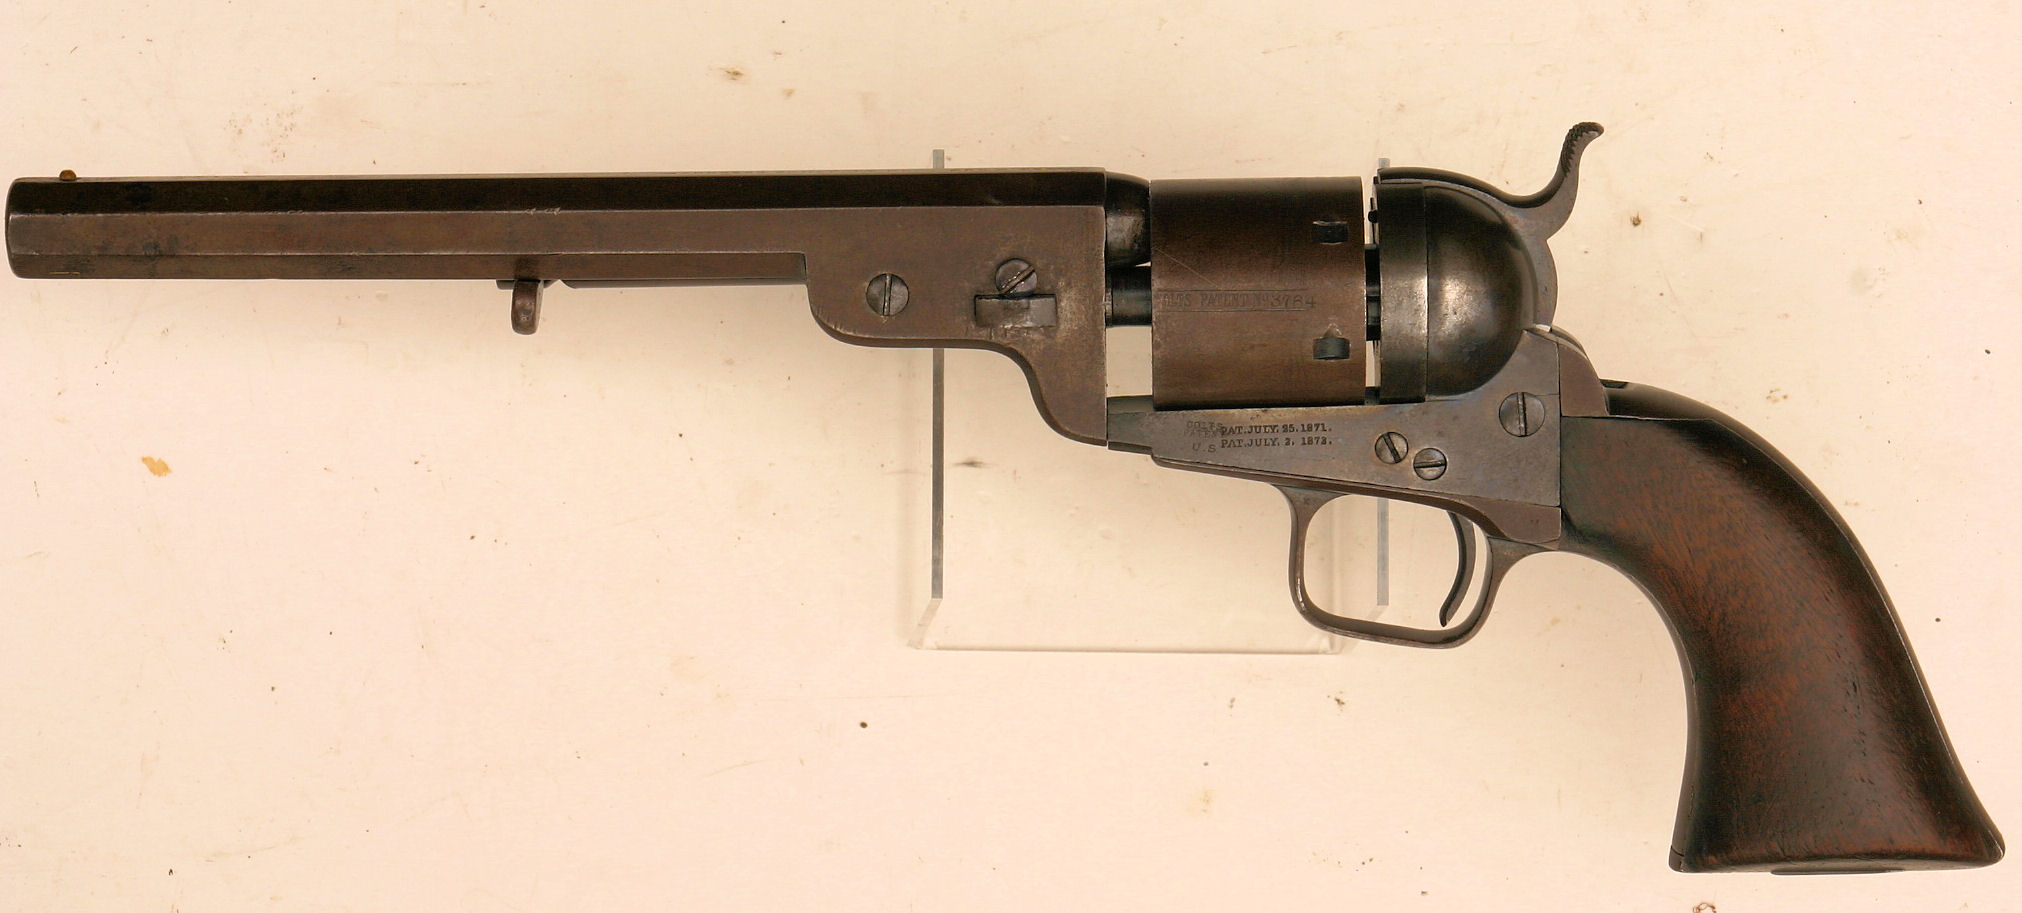 The next design was introduced in 1873, when Colt